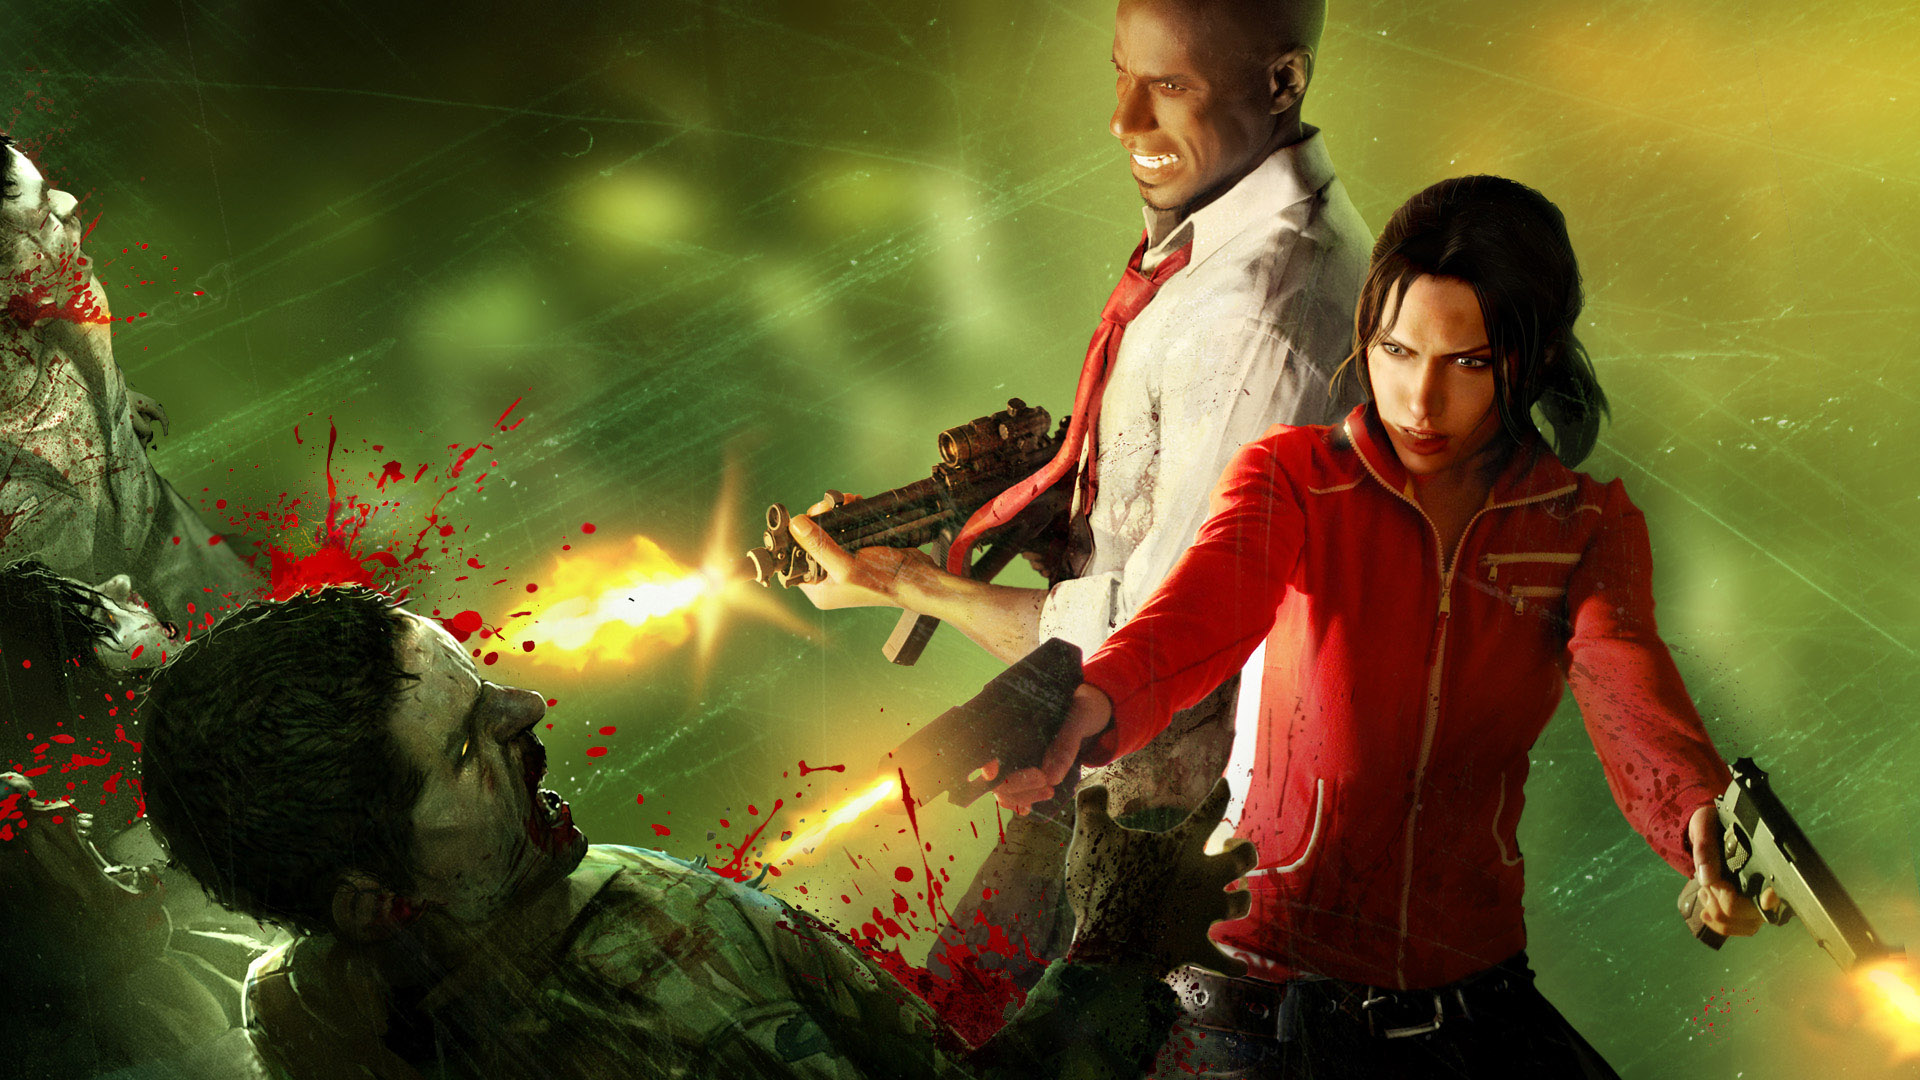 Left 4 Dead Wallpaper 3875